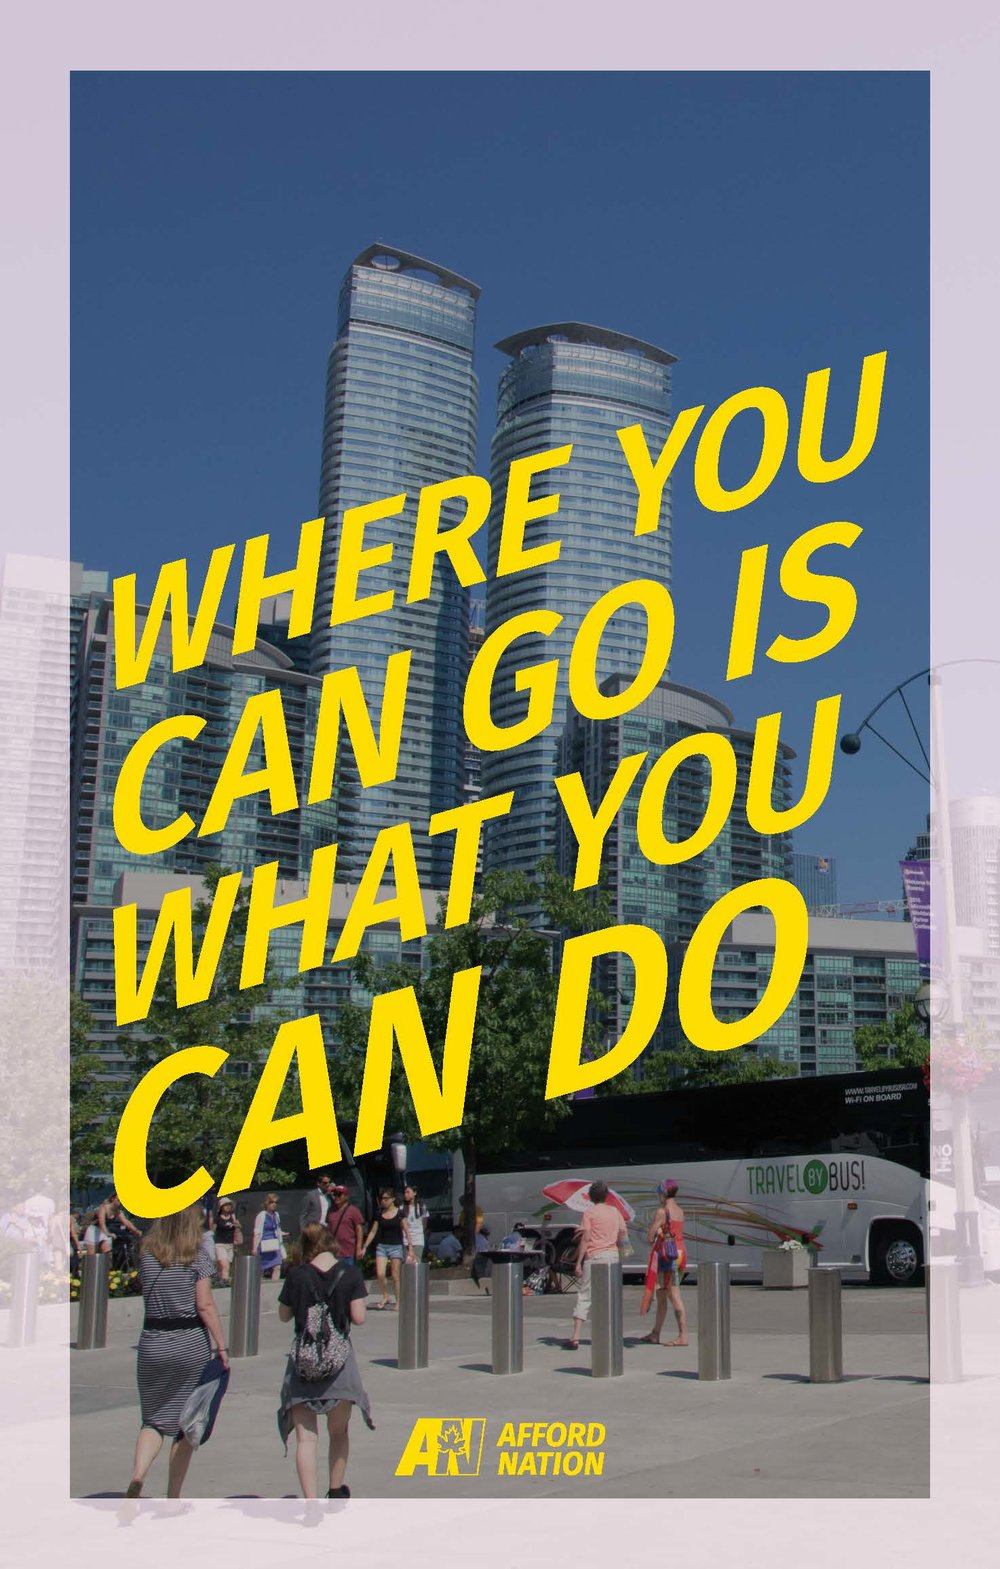 Where you can go is what you can do